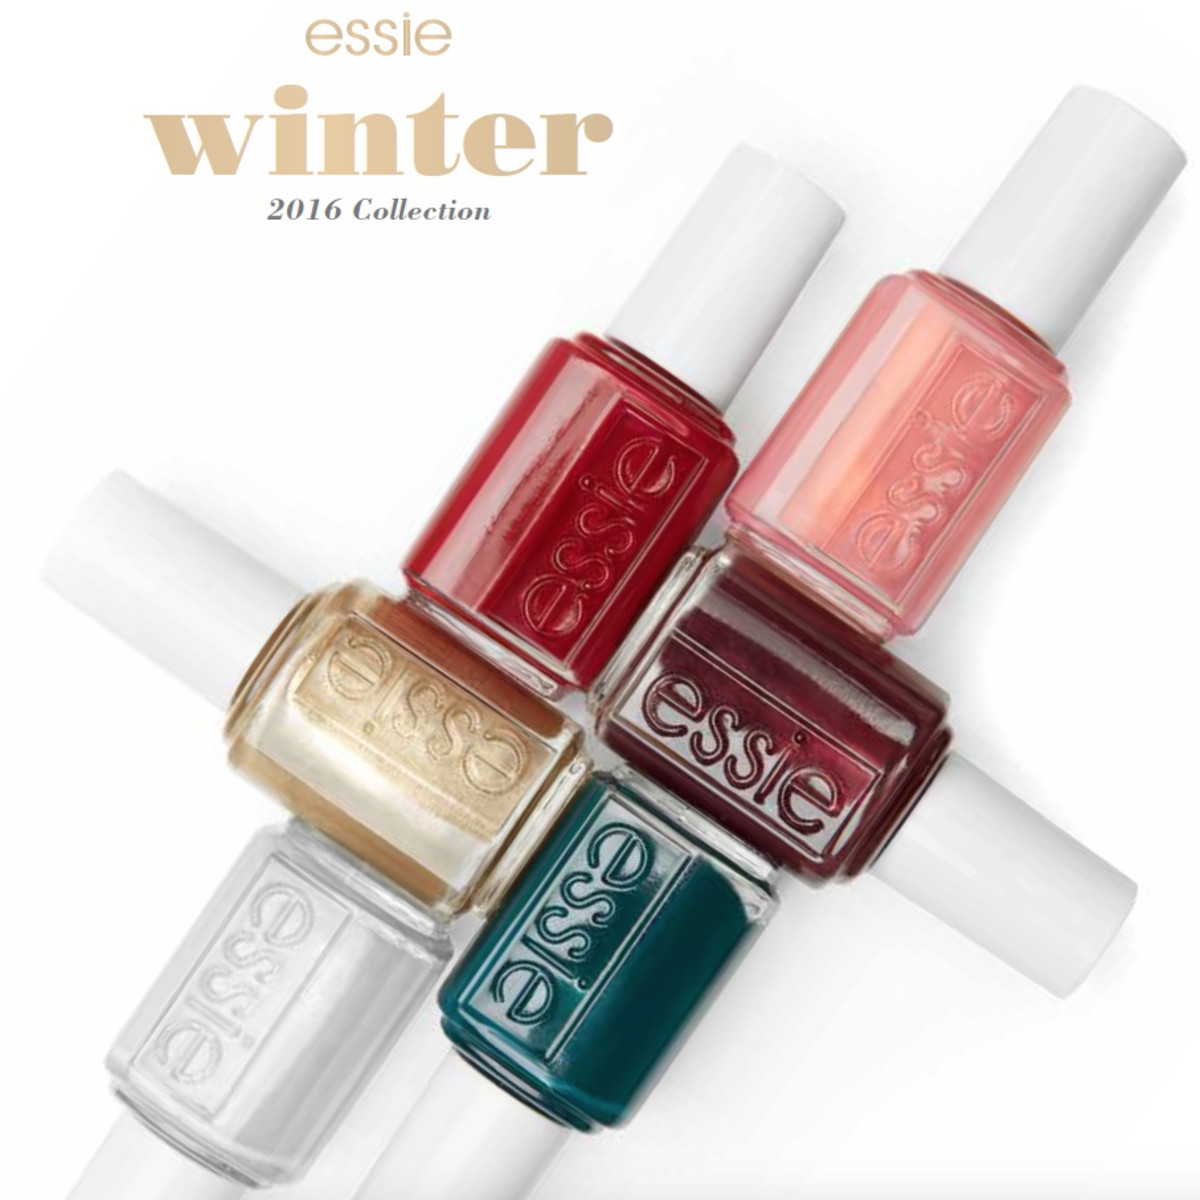 Essie Winter 2016 Getting Groovy Collection Swatches Review